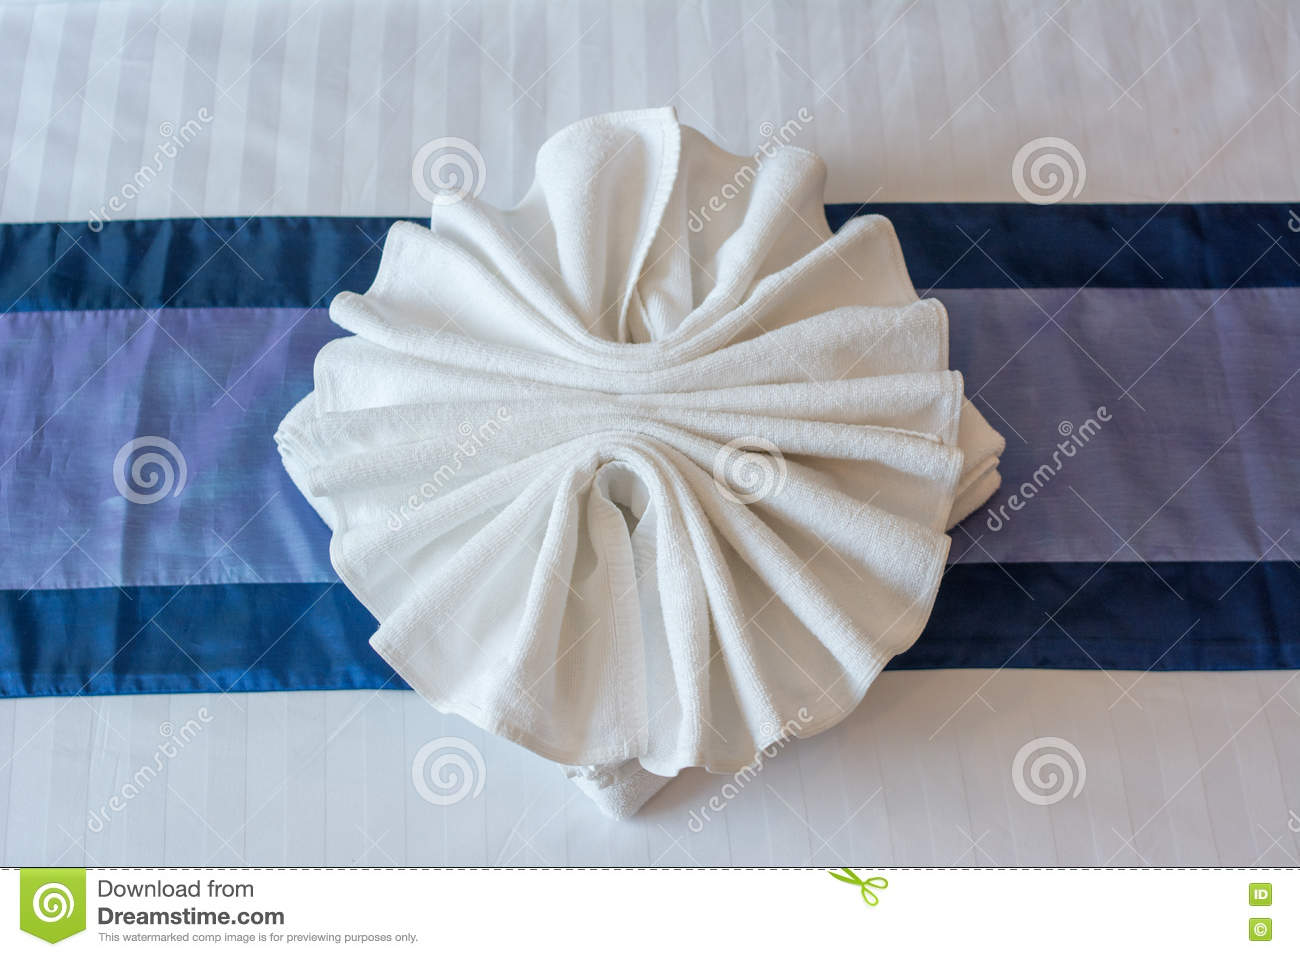 Bed sheets designs white - White Towels Design On Bed Sheet